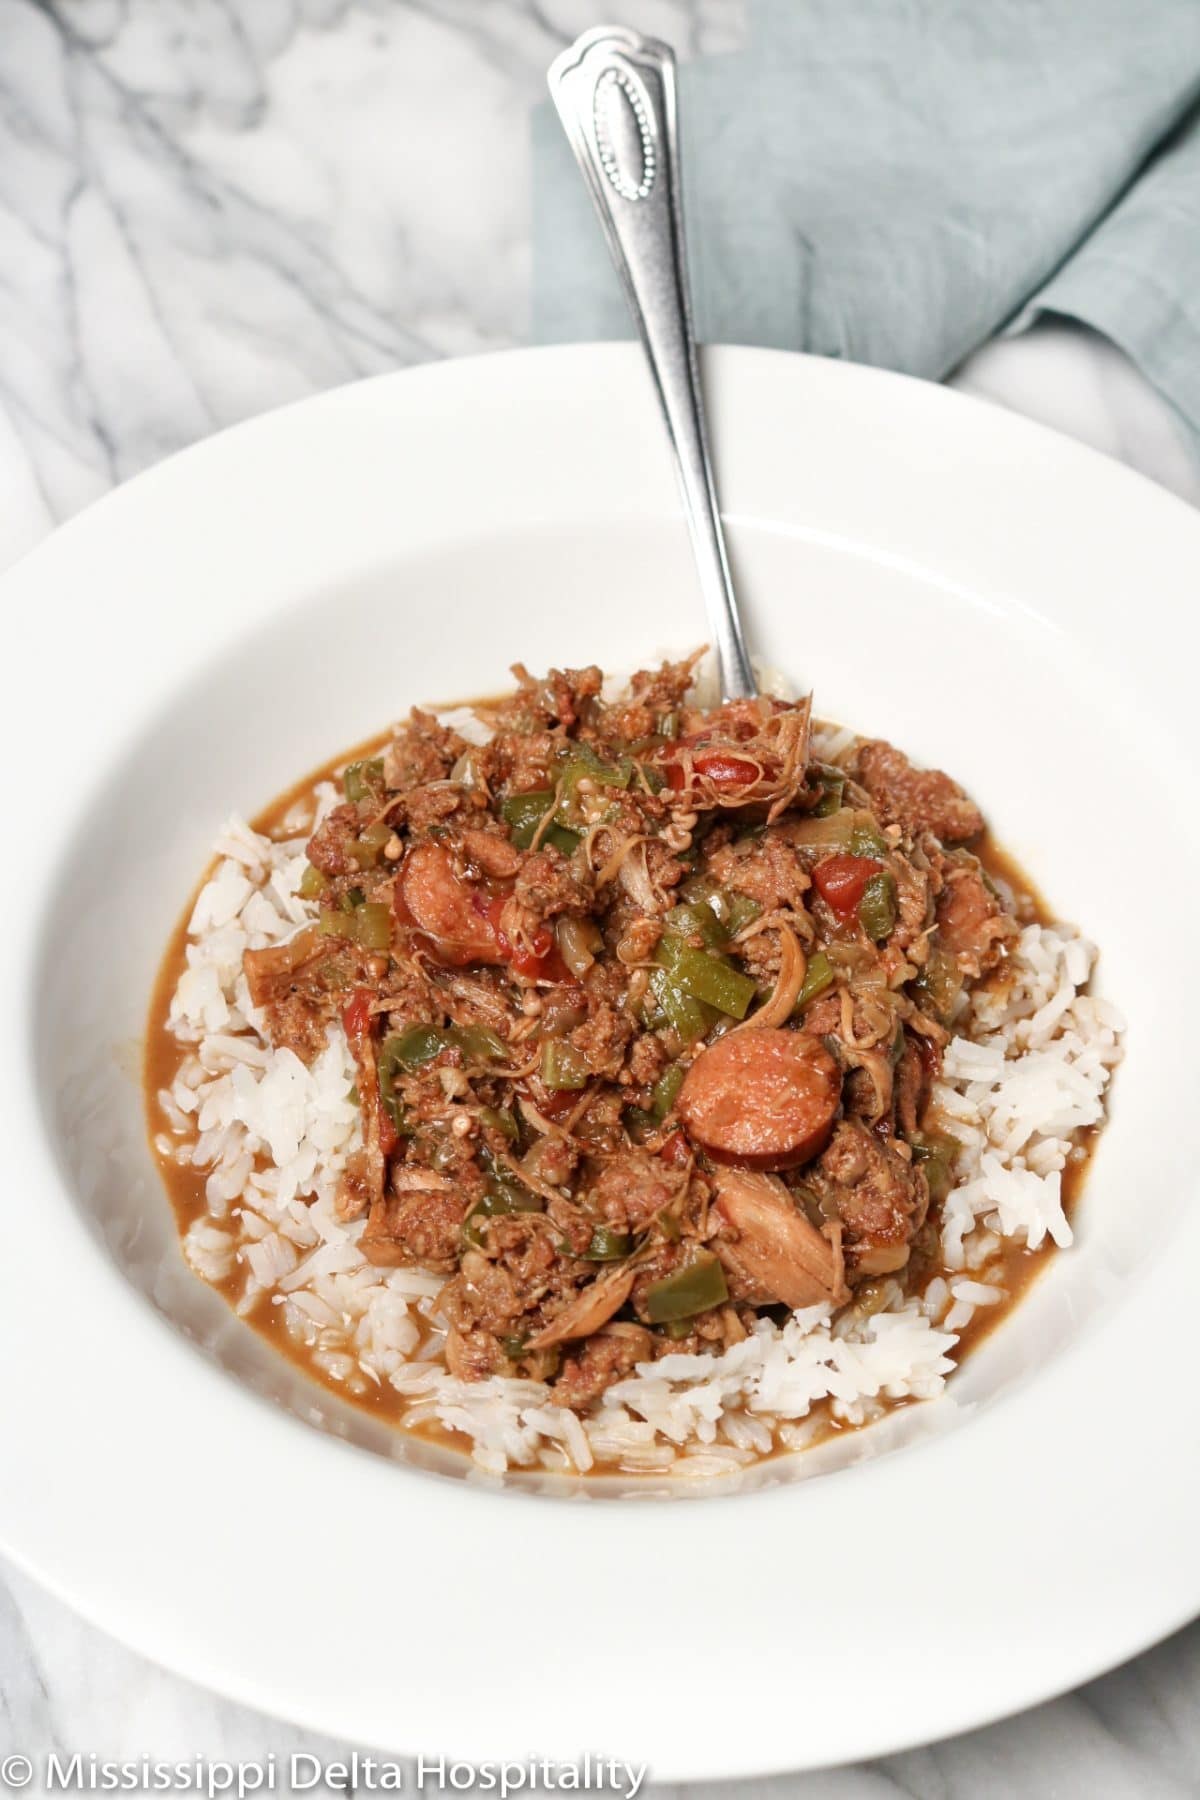 A bowl full of chicken and sausage gumbo with a spoon in it on a marble board with a teal napkin in the background.